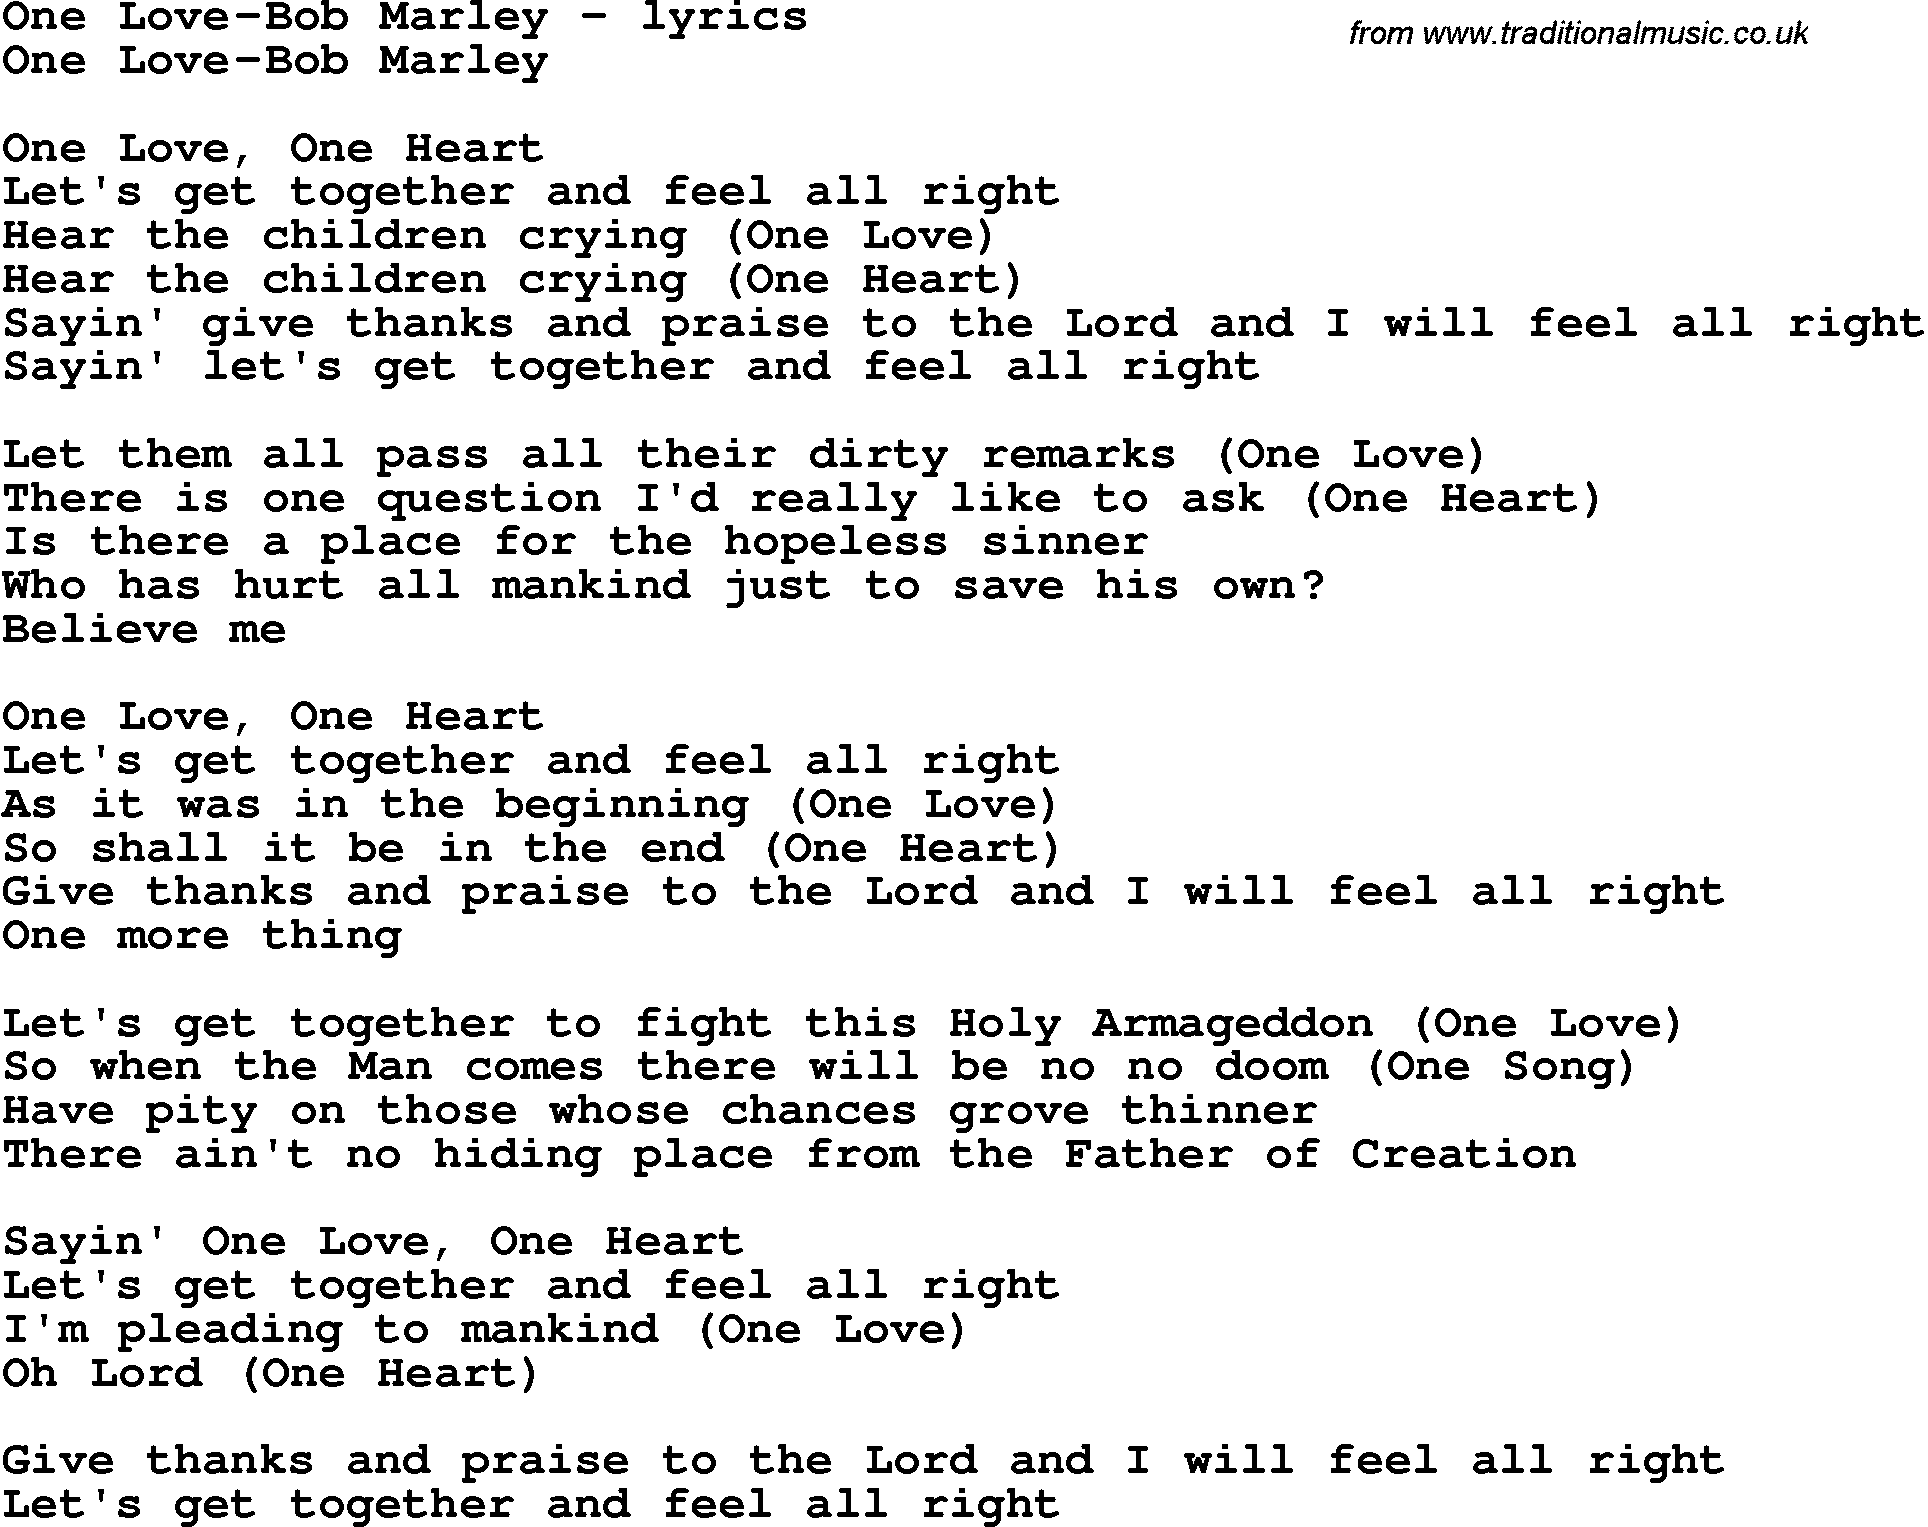 » One Love by Bob Marley and Song Facts